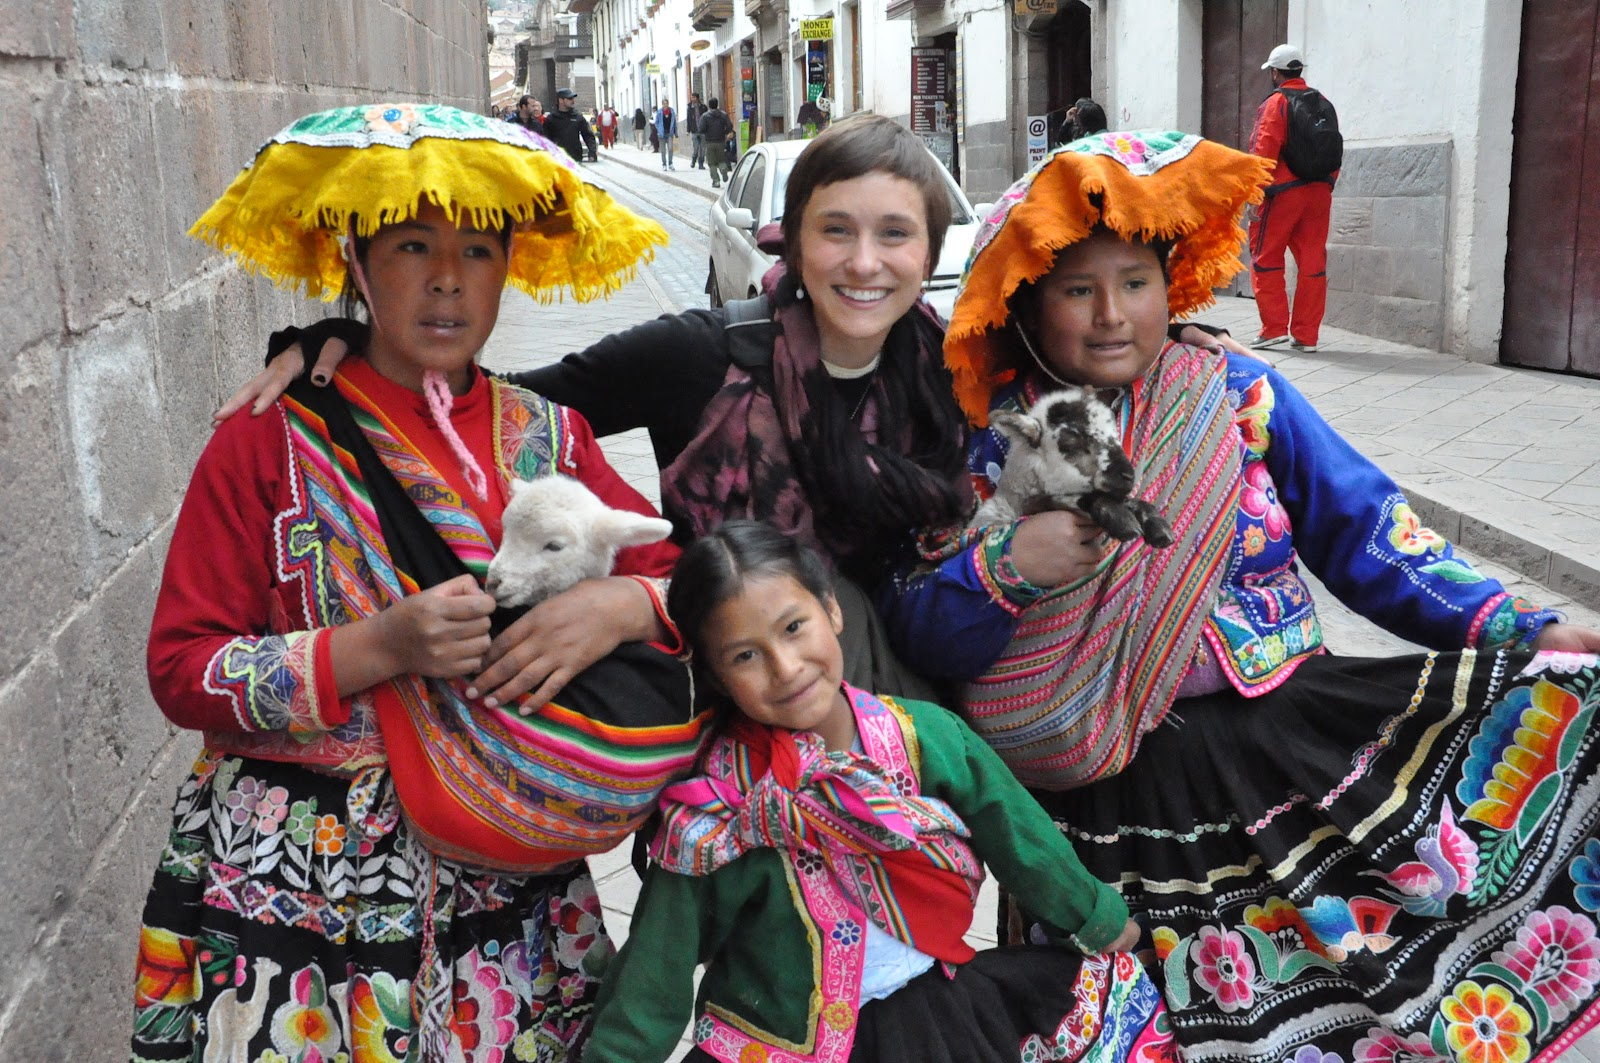 chilean culture and customs - photo #13